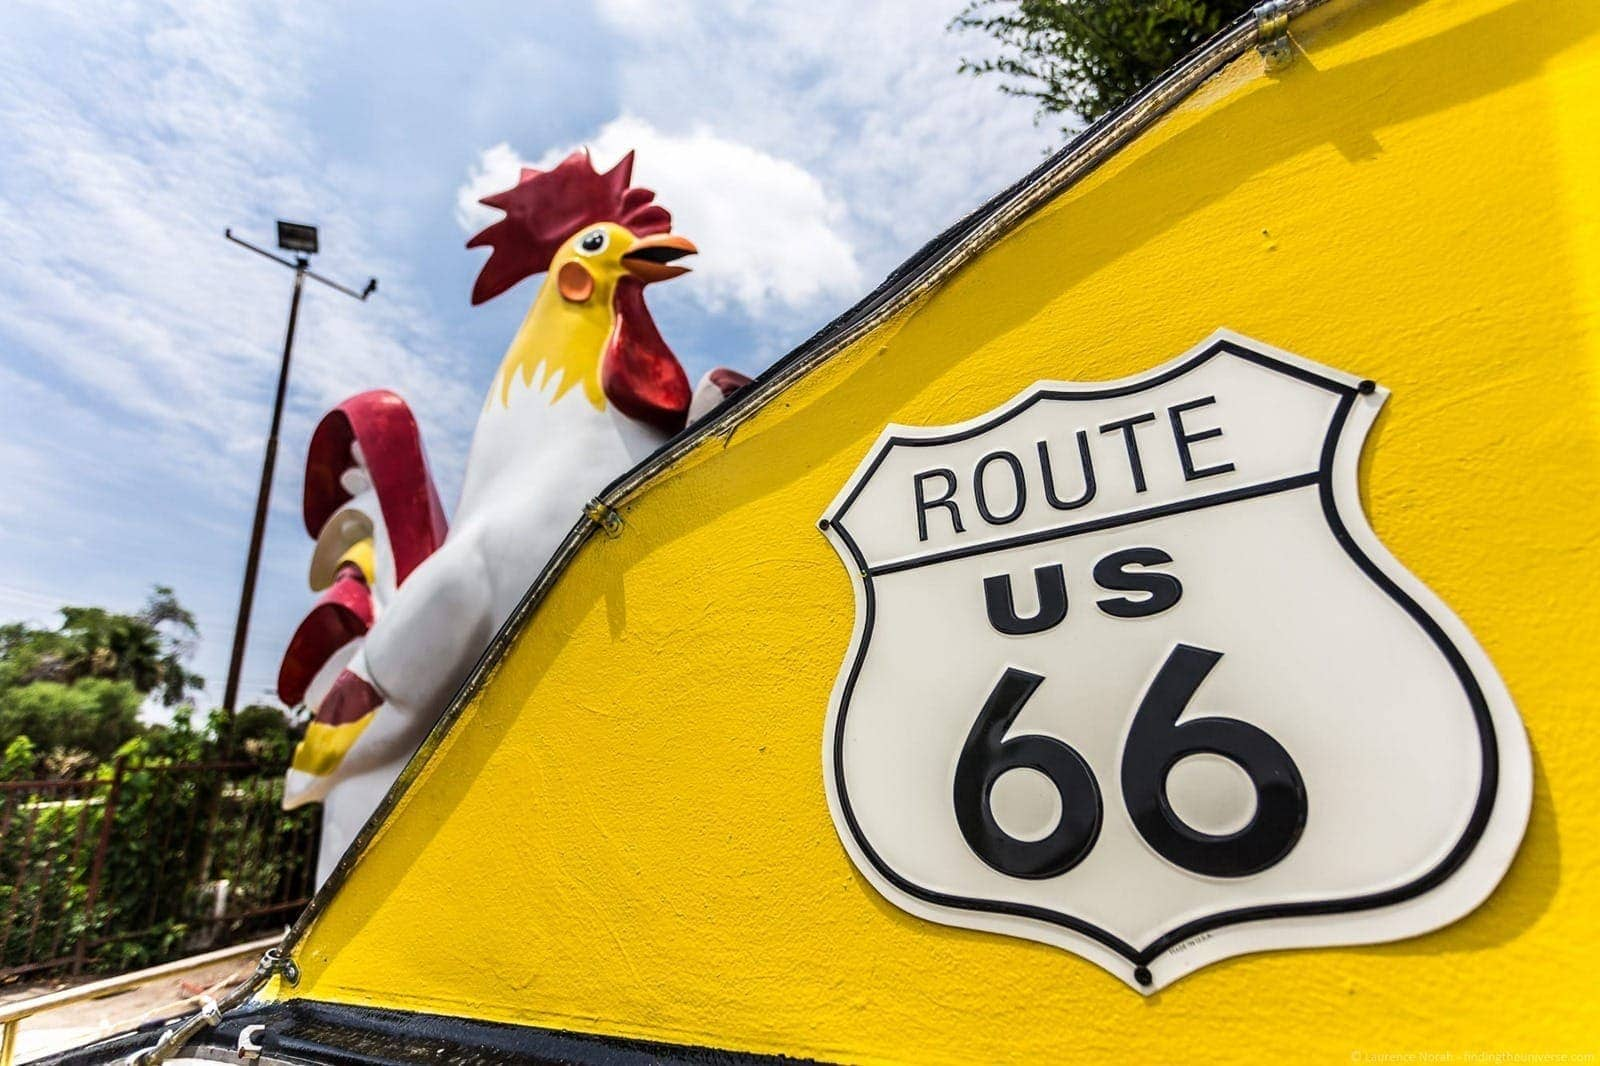 Route 66 giant chicken